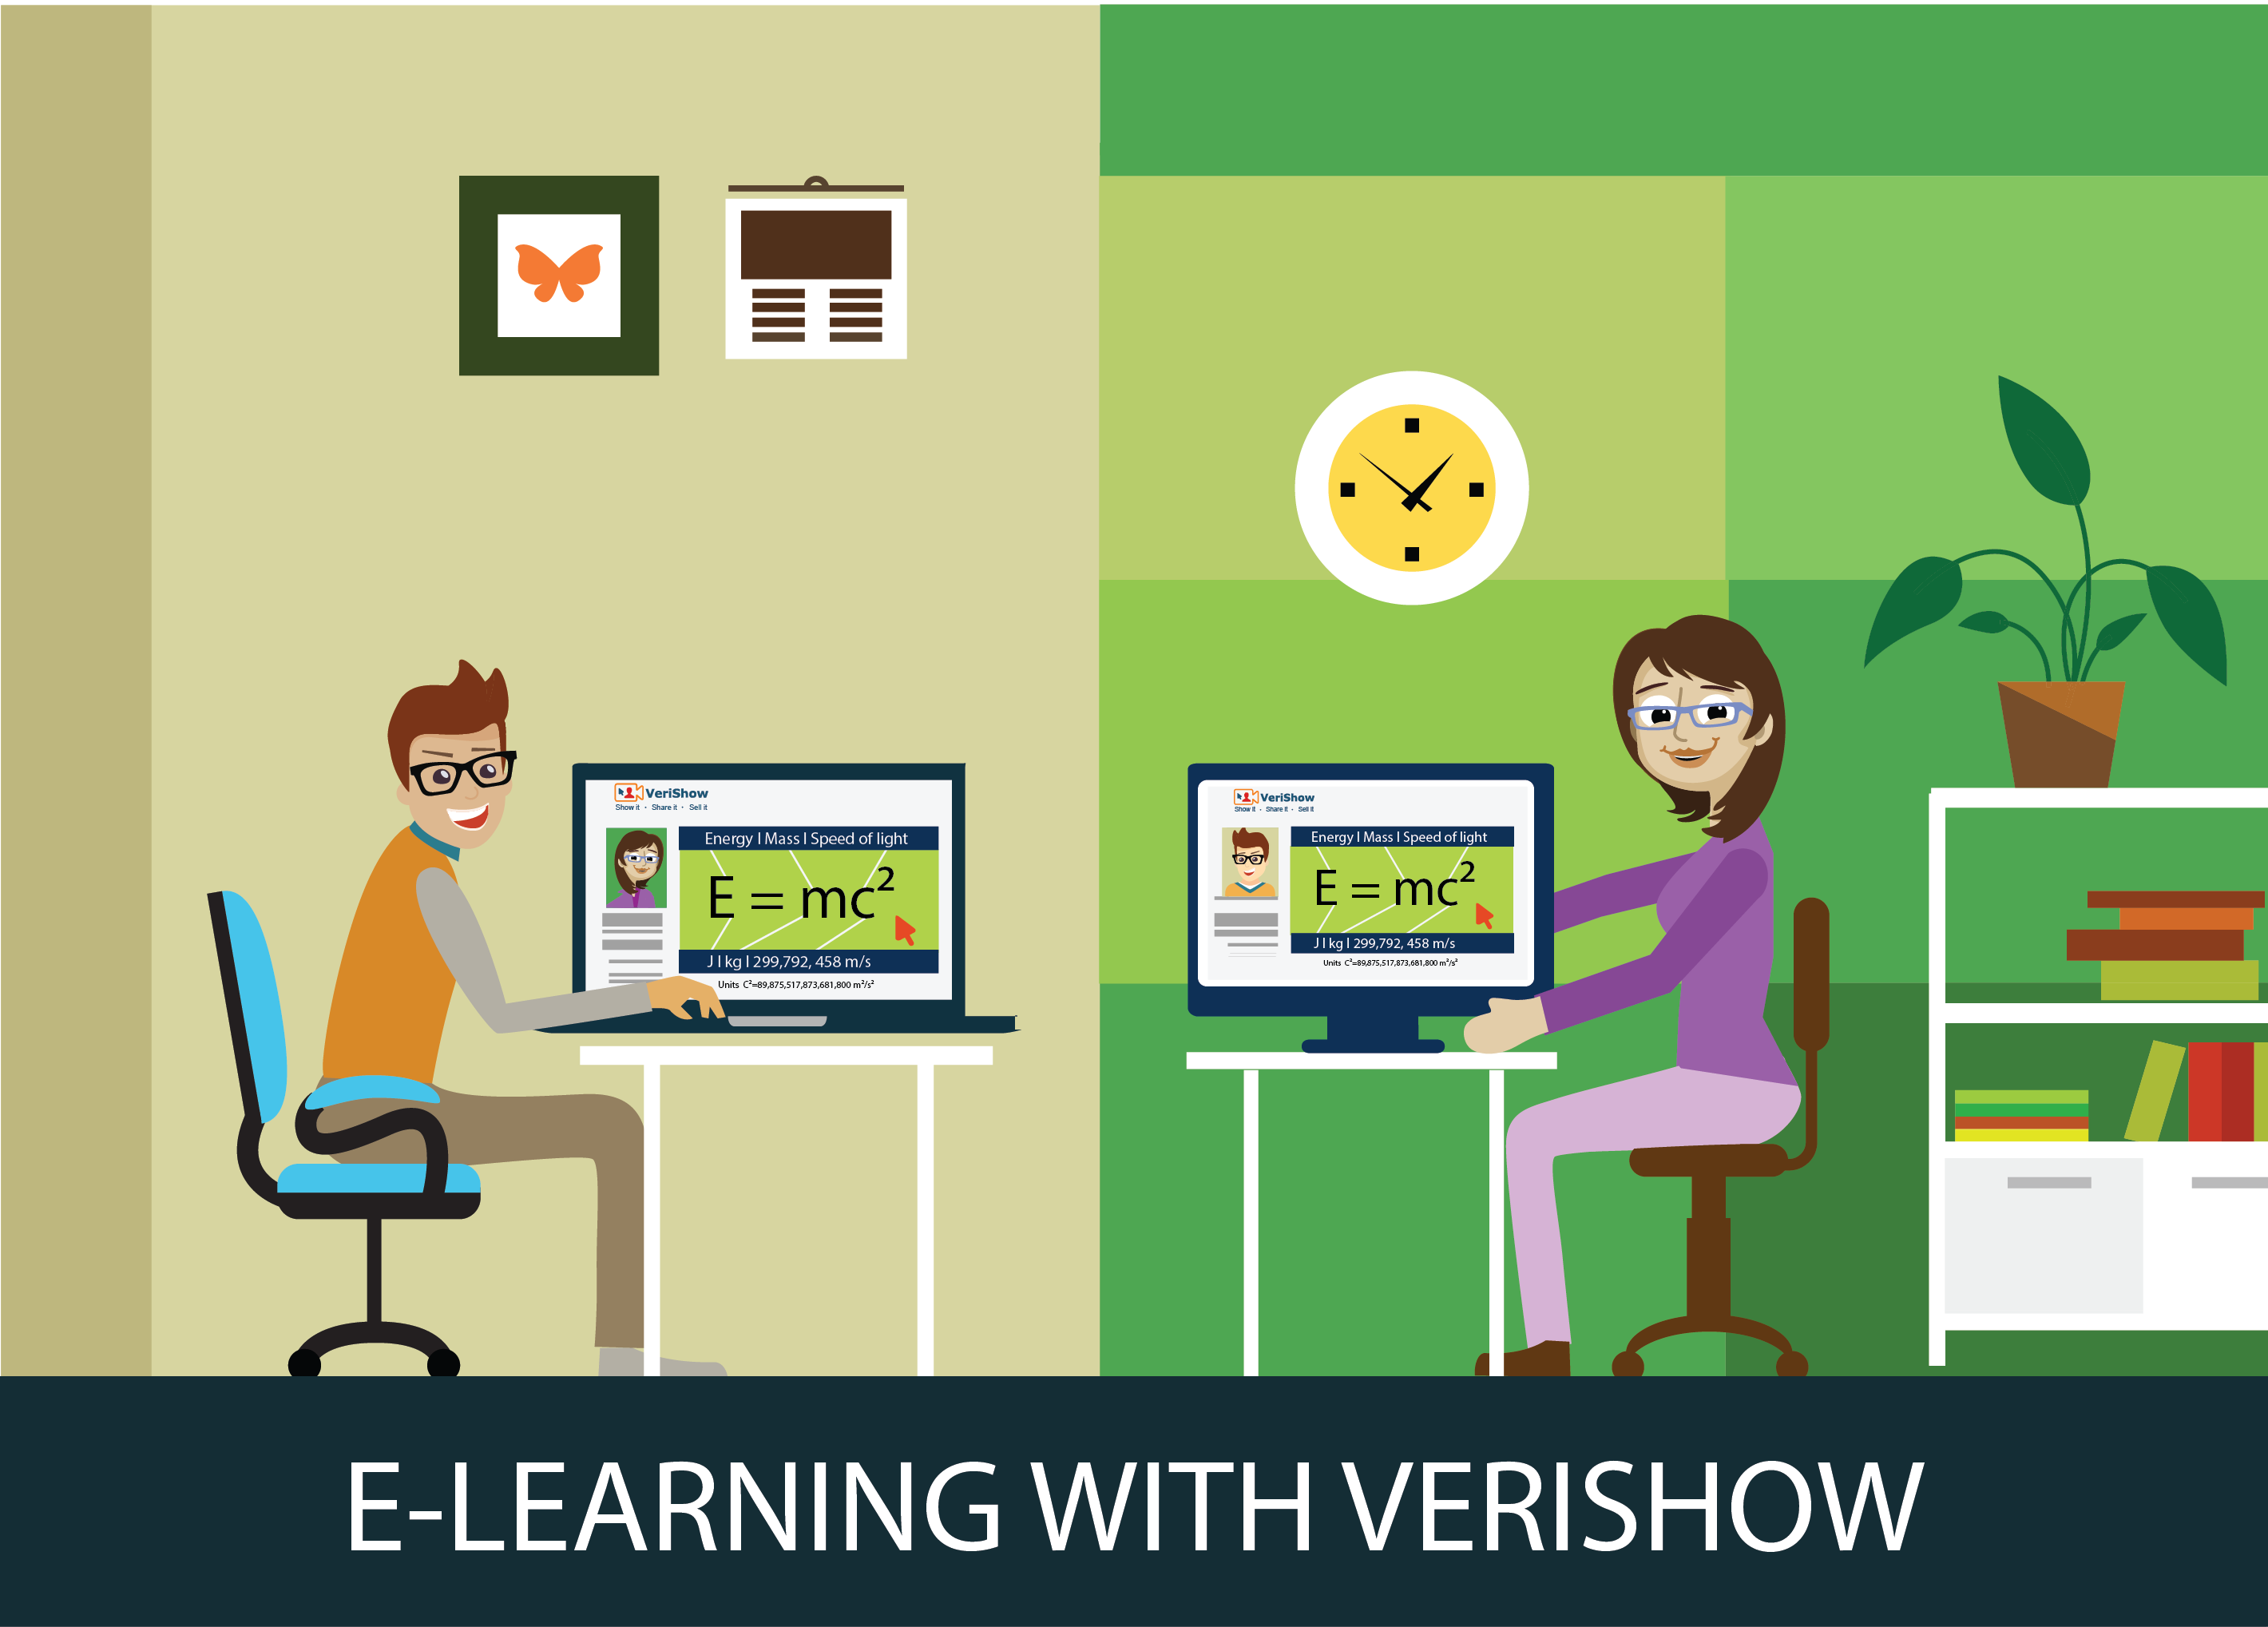 E-Learning with VeriShow video chat service